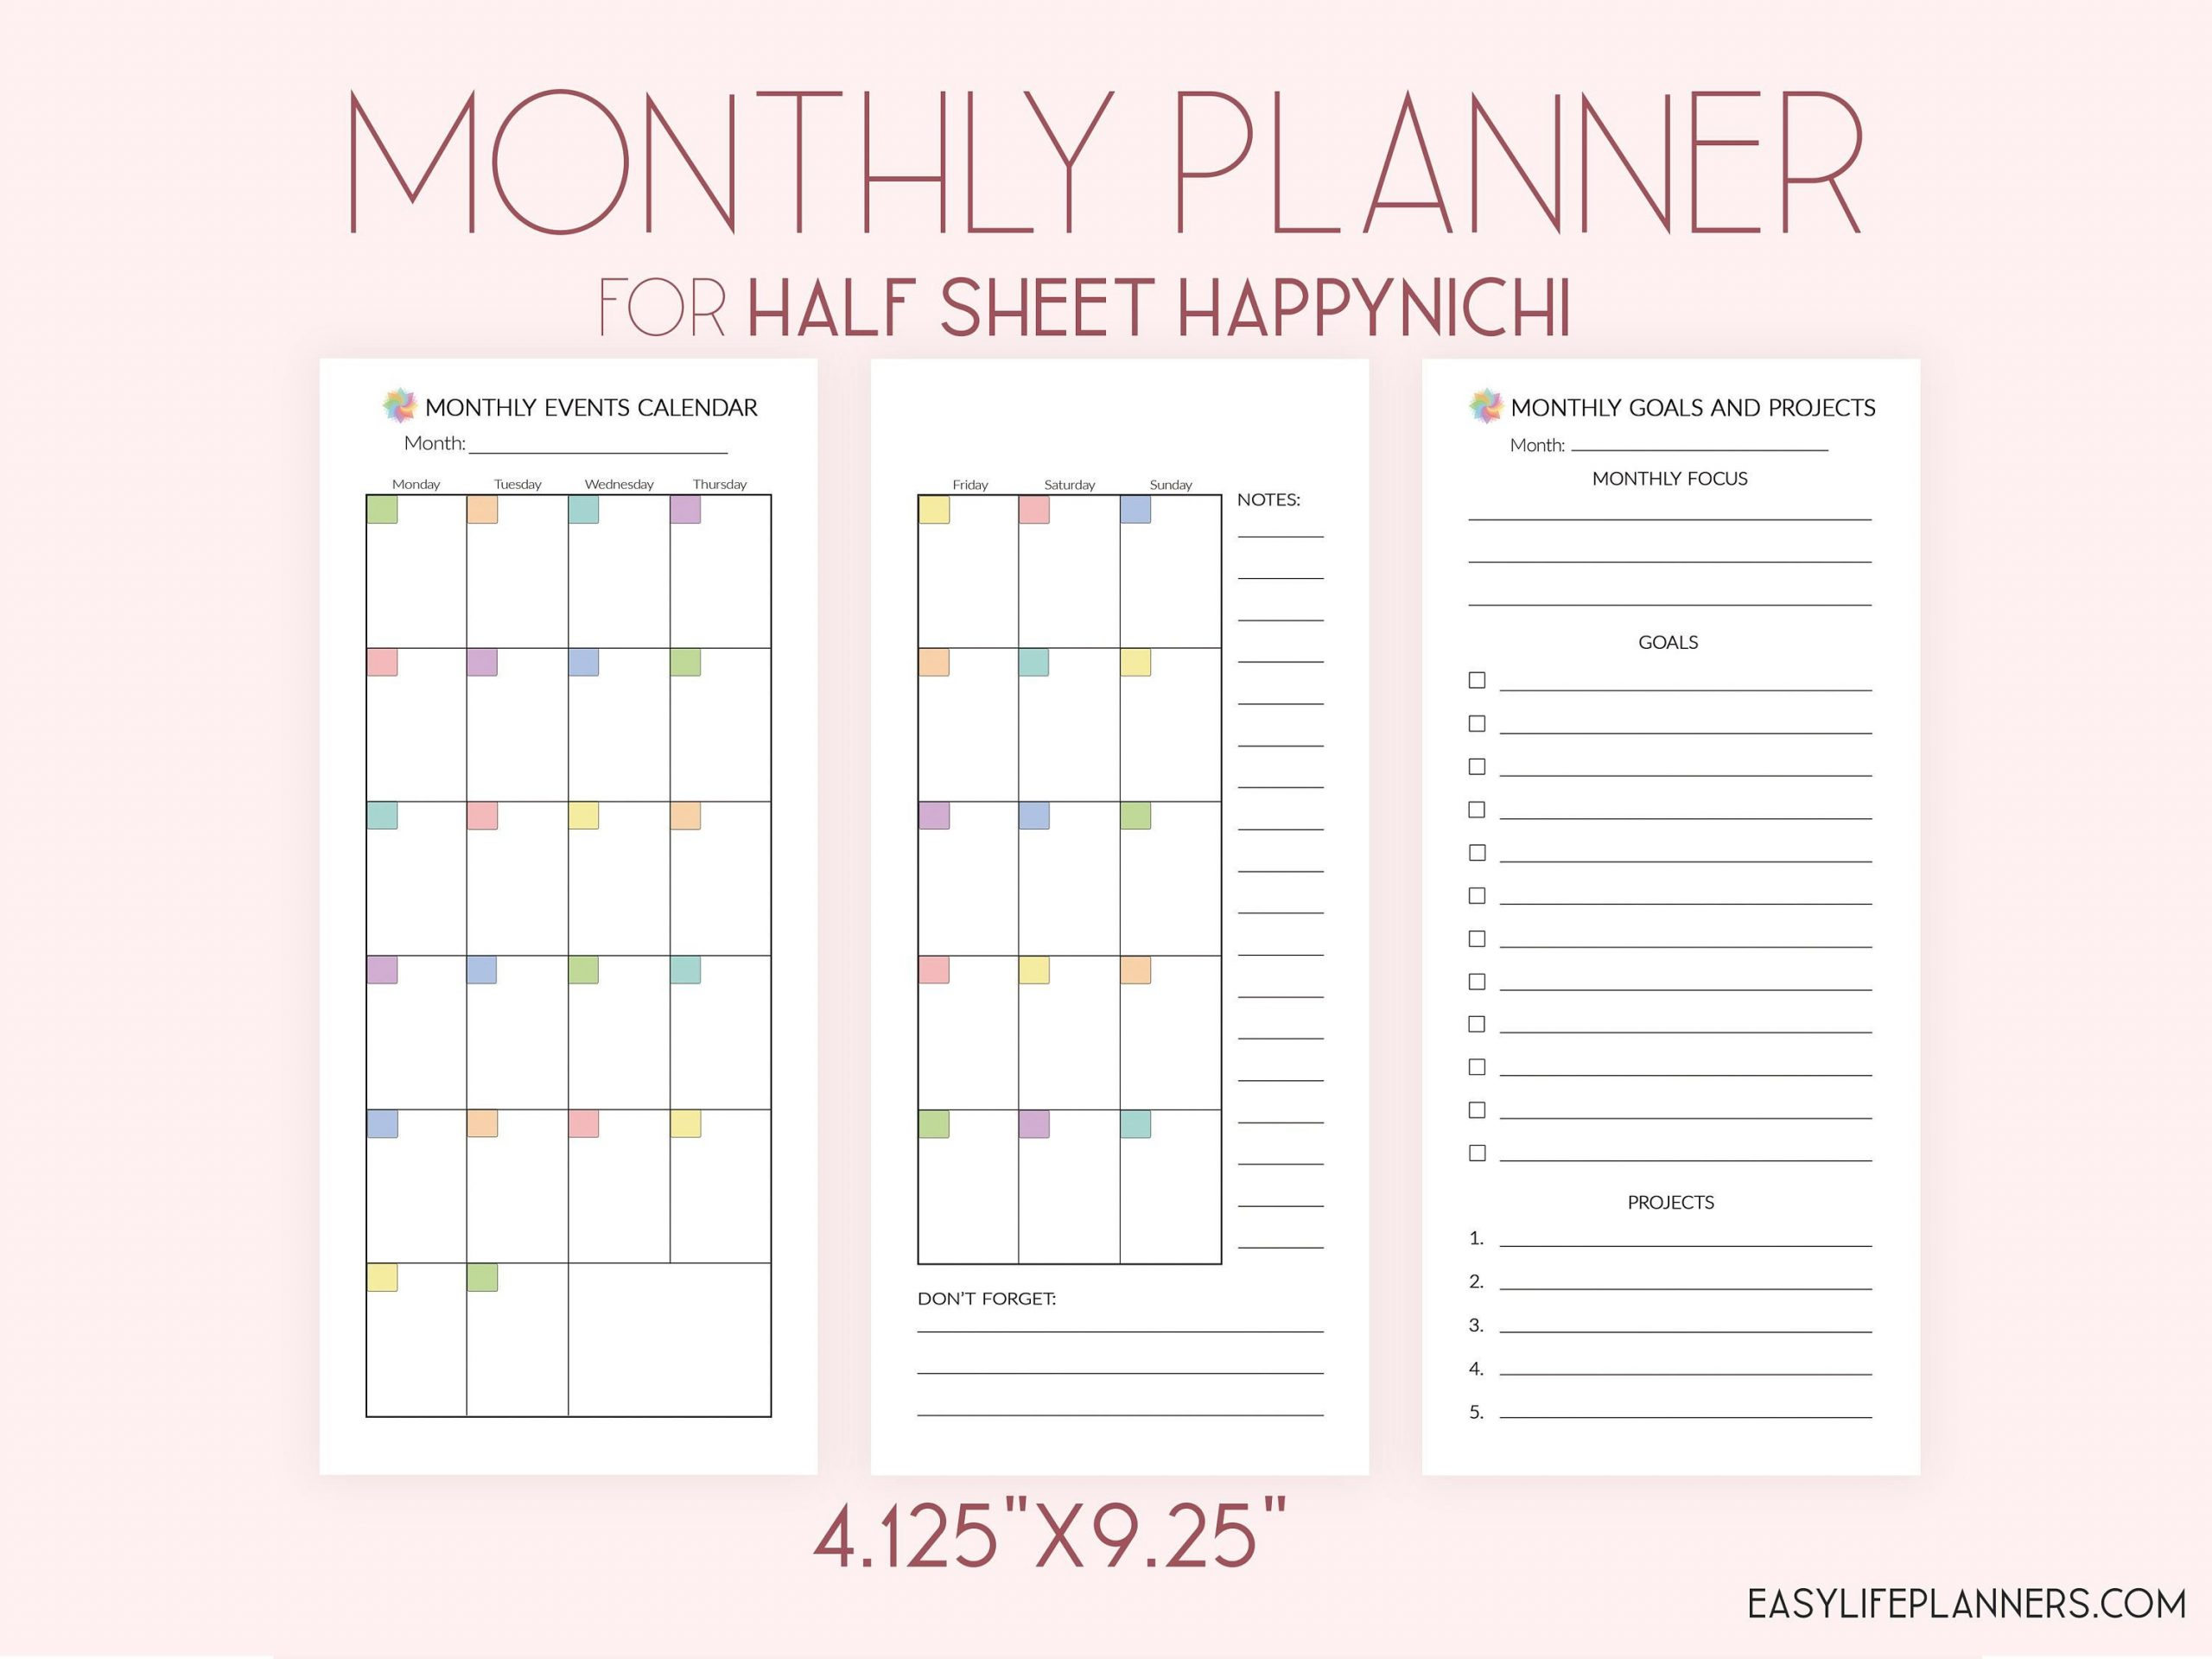 Month On Two Pages, Half Sheet Happy Planner, Happynichi Half Sheet Calendar Template Free